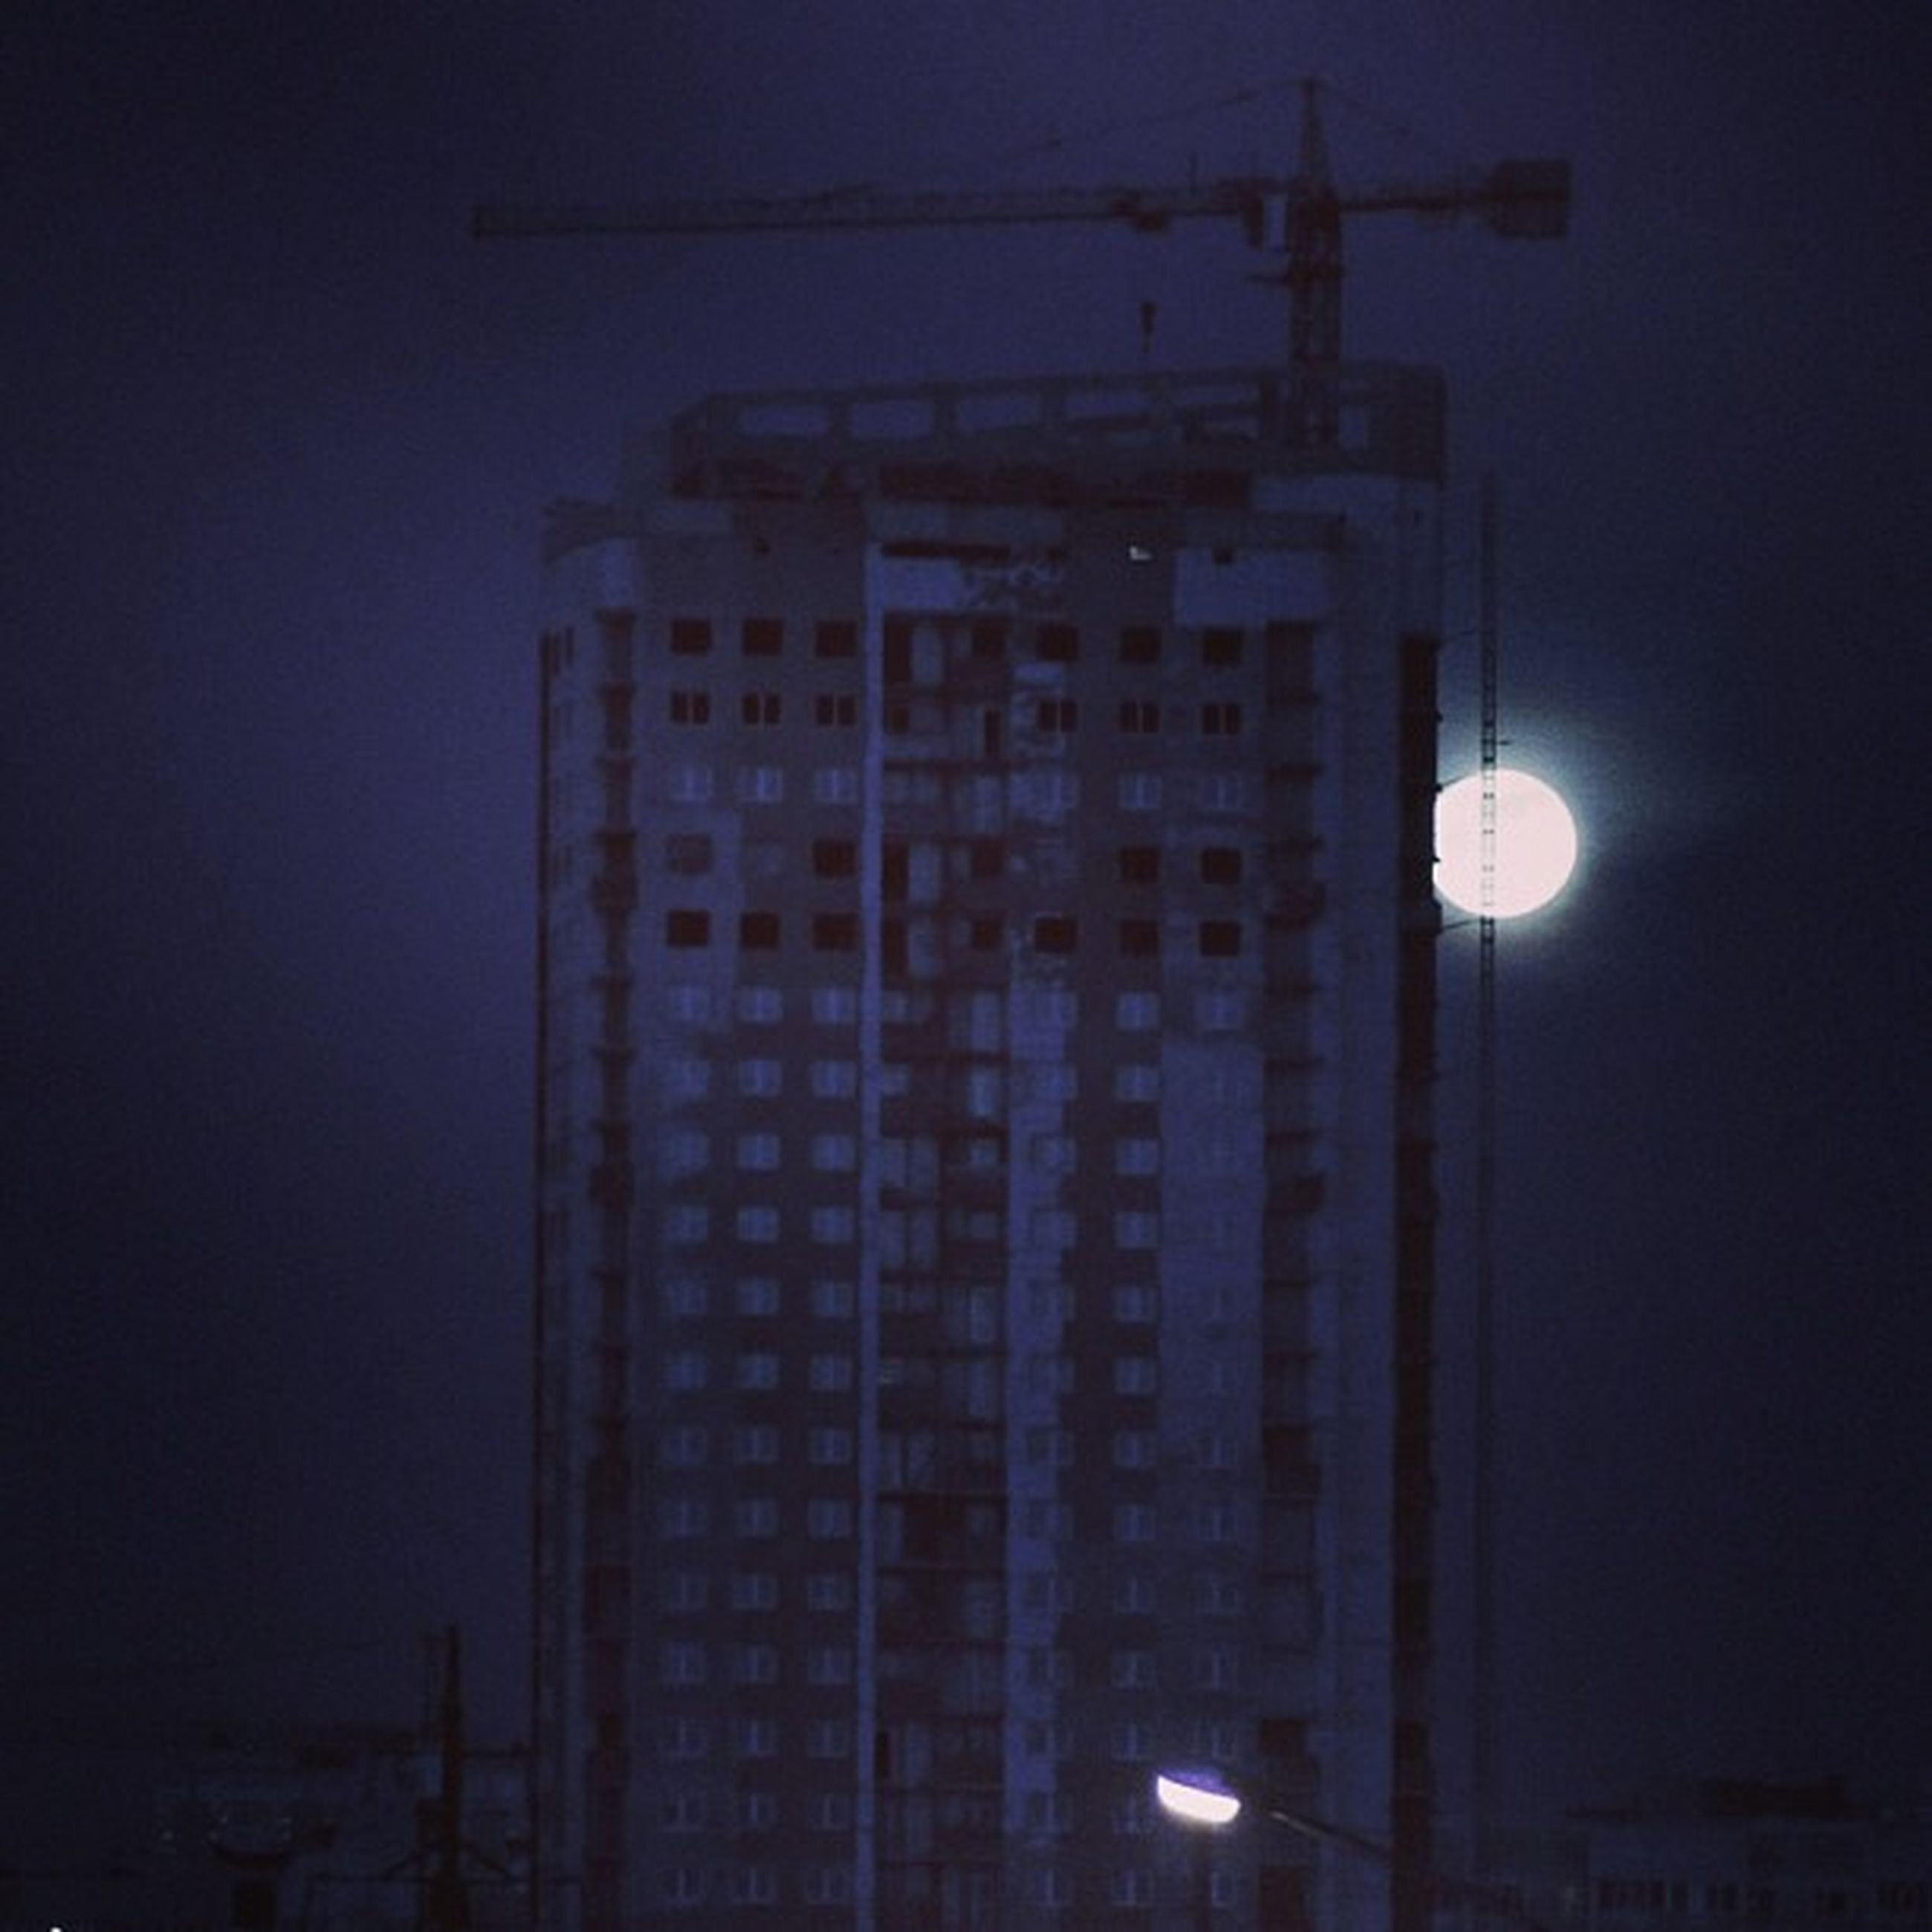 building exterior, architecture, built structure, low angle view, night, illuminated, electricity, street light, city, sky, building, lighting equipment, development, clear sky, crane - construction machinery, dusk, tall - high, tower, fuel and power generation, outdoors